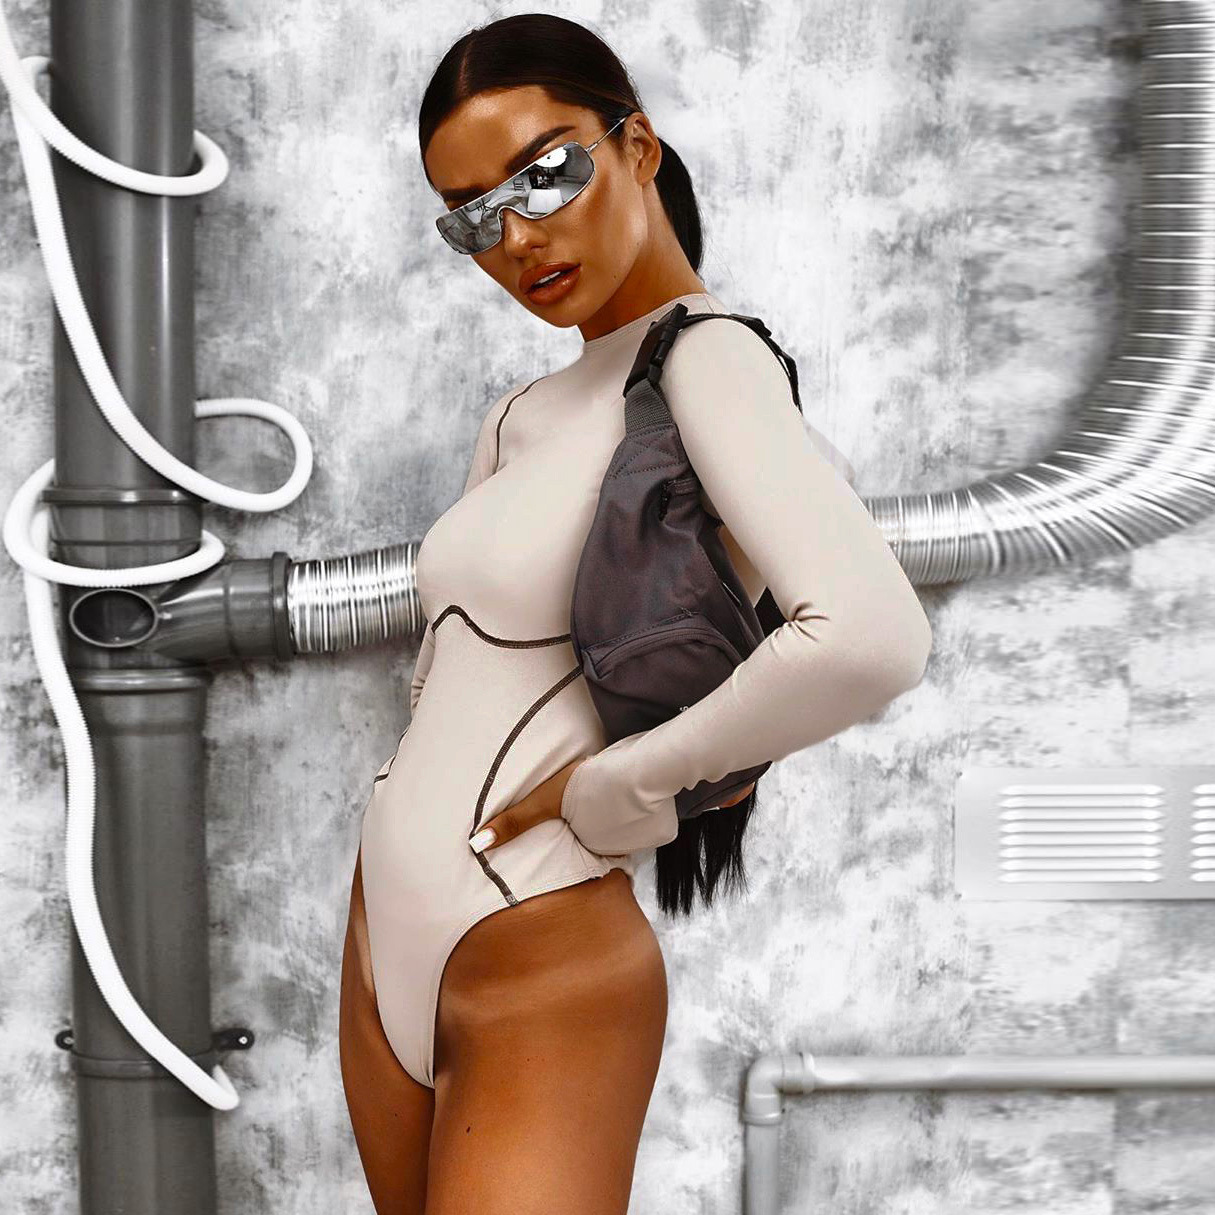 Women Apricot Sexy Bodysuits 2019 New Autumn Winter Long Sleeve O Neck Short Romper Skinny Overalls Casual Bodysuit Tops Female in Bodysuits from Women 39 s Clothing